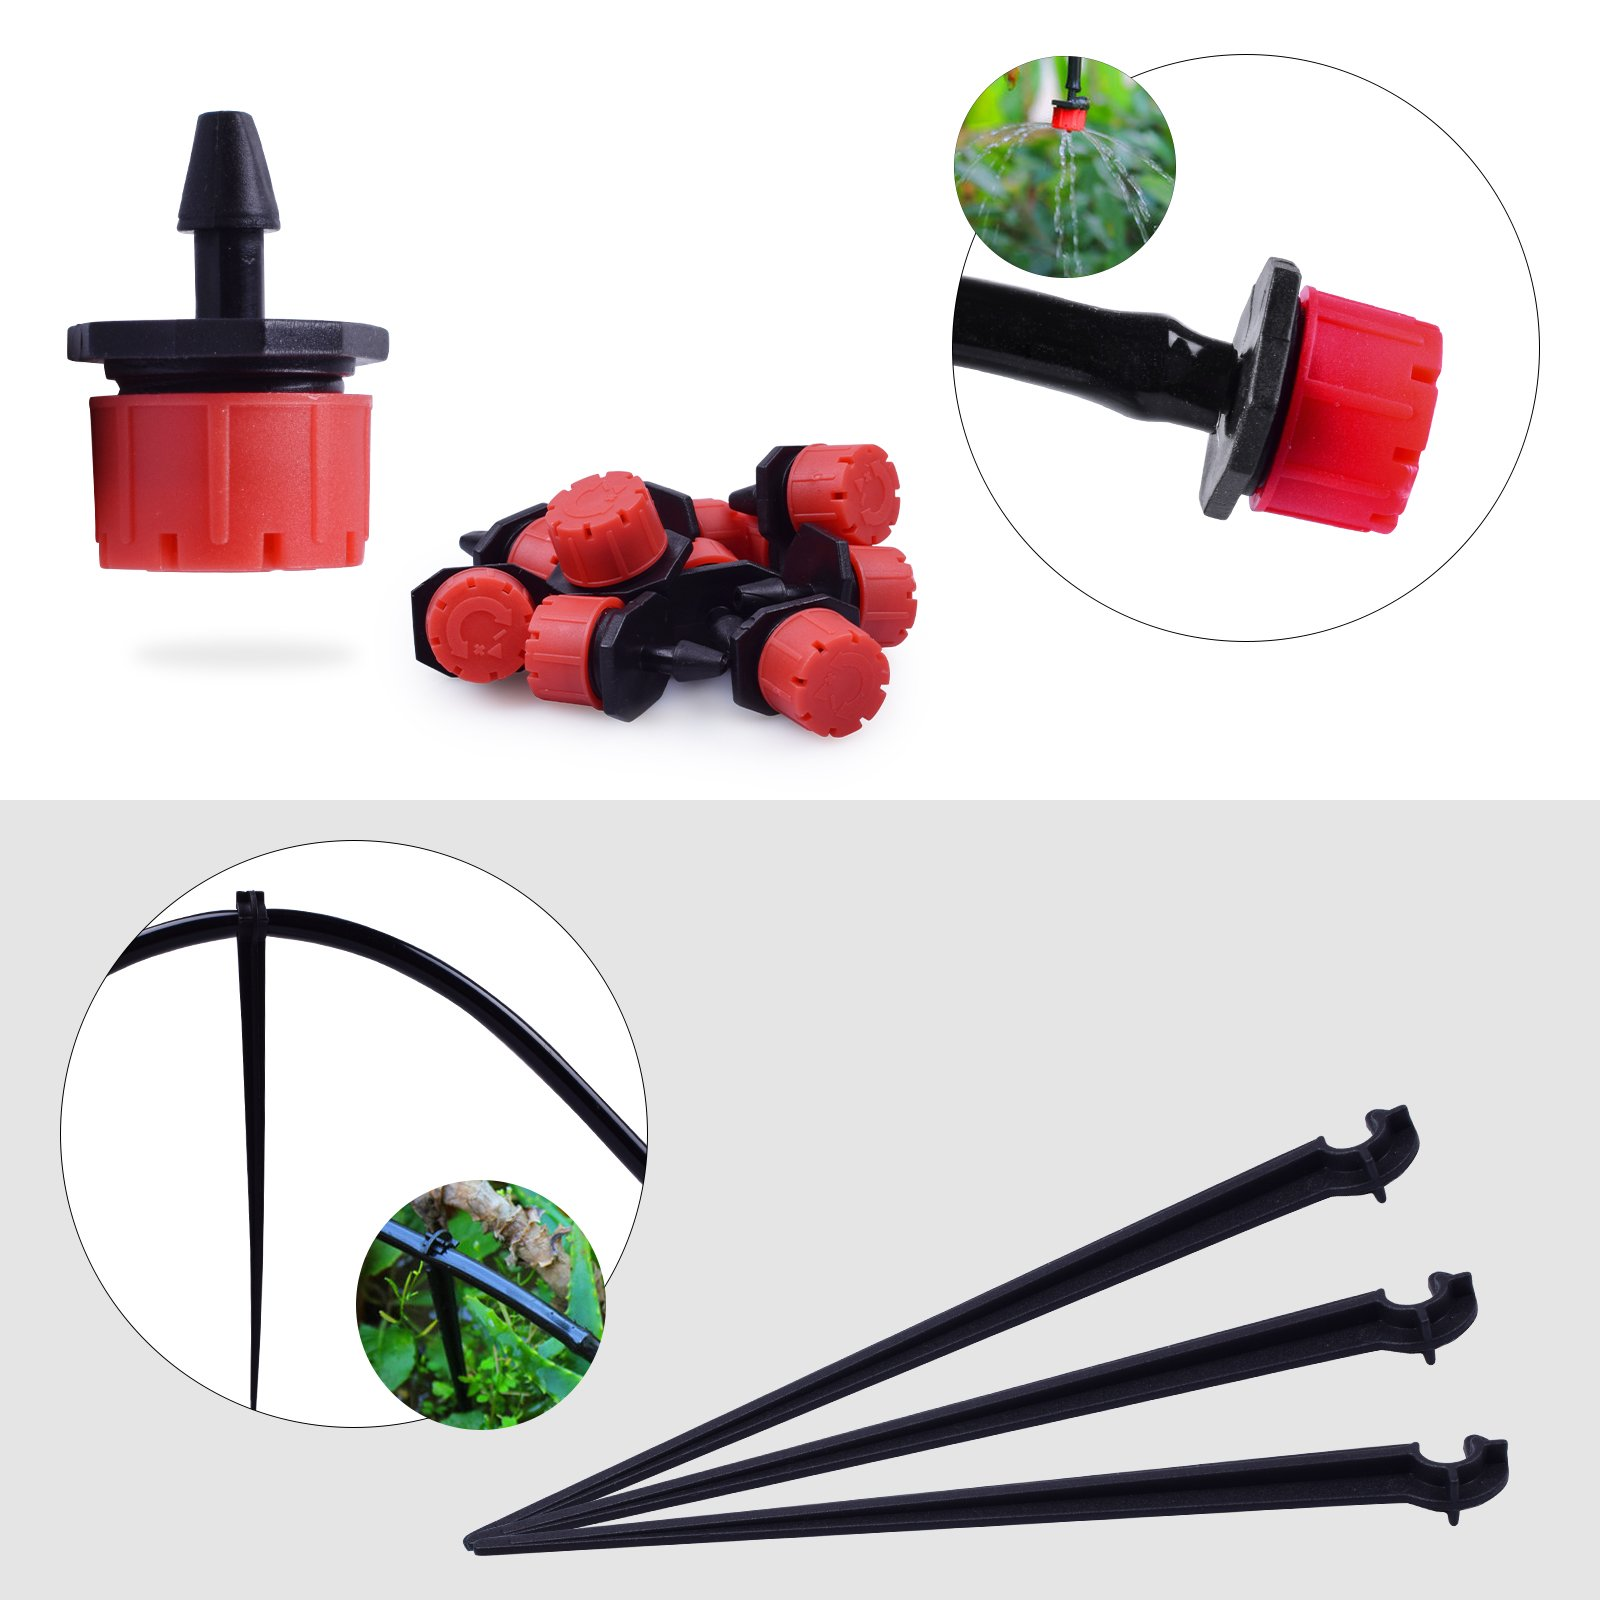 "MIXC 1/4-inch Drip Irrigation Kits Accessories Plant Watering System with 50ft 1/4"" Blank Distribution Tubing Hose, 20pcs Dripers, 20pcs Barbed Fittings, Support Stakes, Quick Adapter, Model: GG0C"